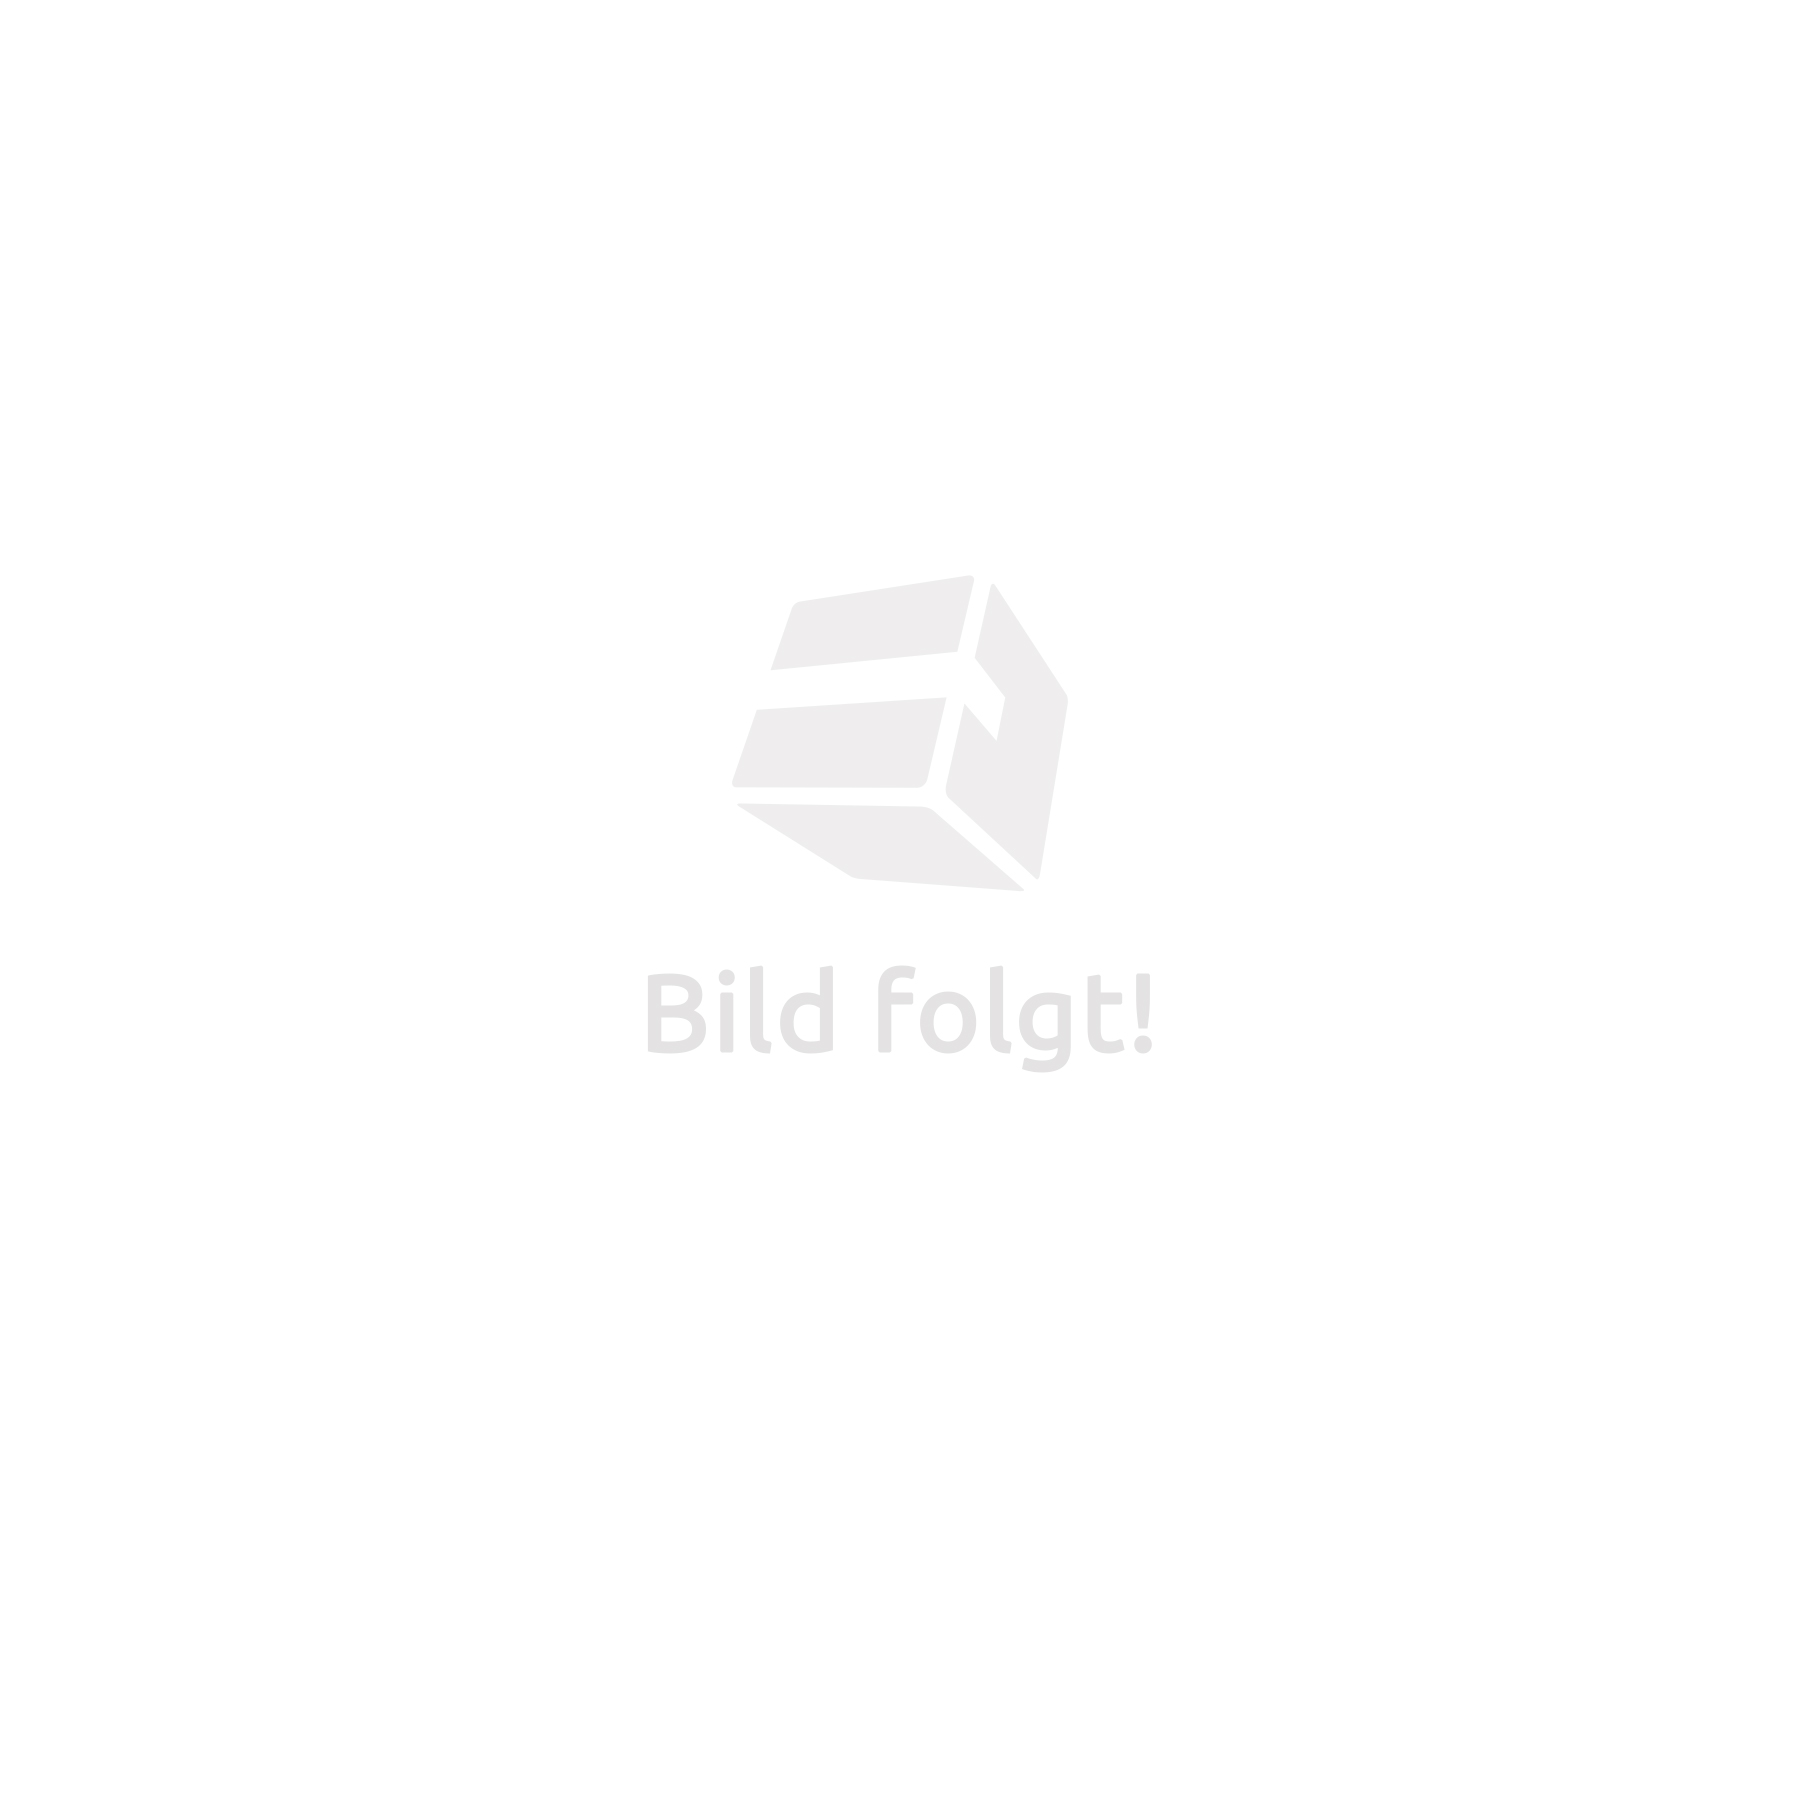 Wooden garden bench eucalyptus wood seat with metal legs for Bancas para jardin